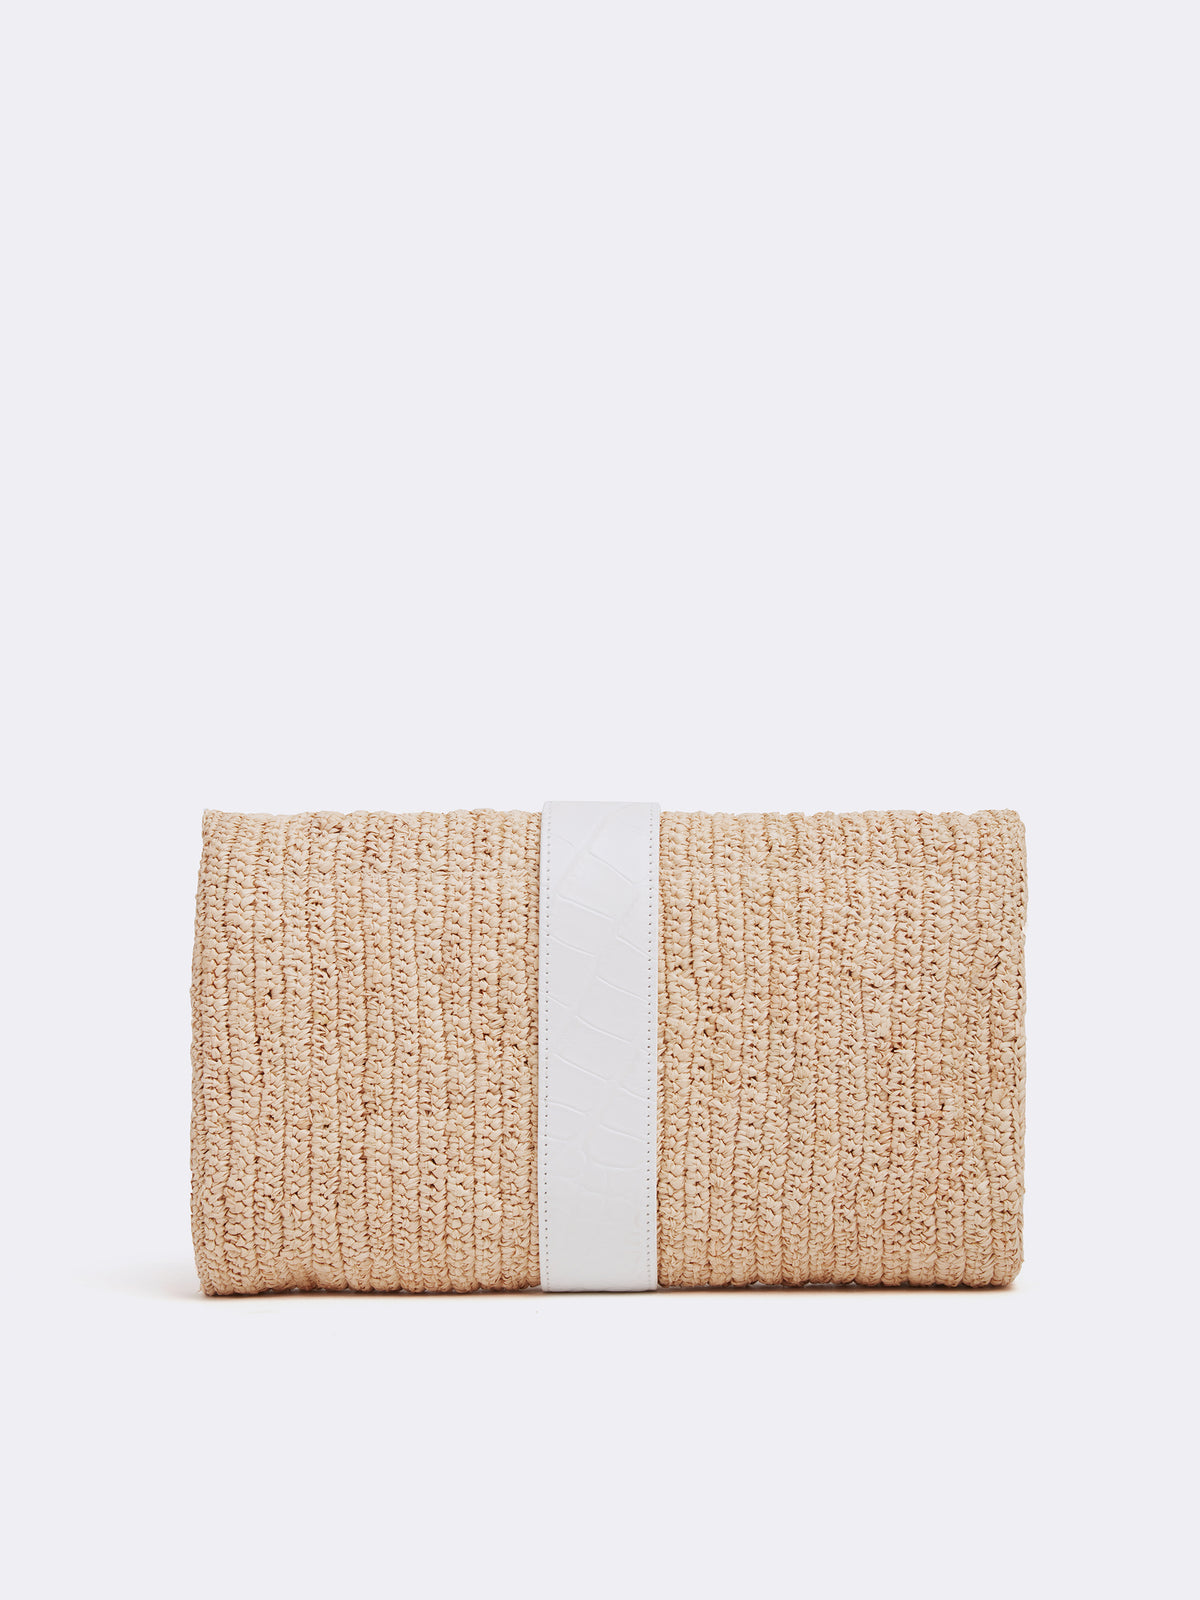 Mark Cross Sylvette Raffia & Leather Clutch Crocodile Stamped Soft Calf White / Natural Raffia Back